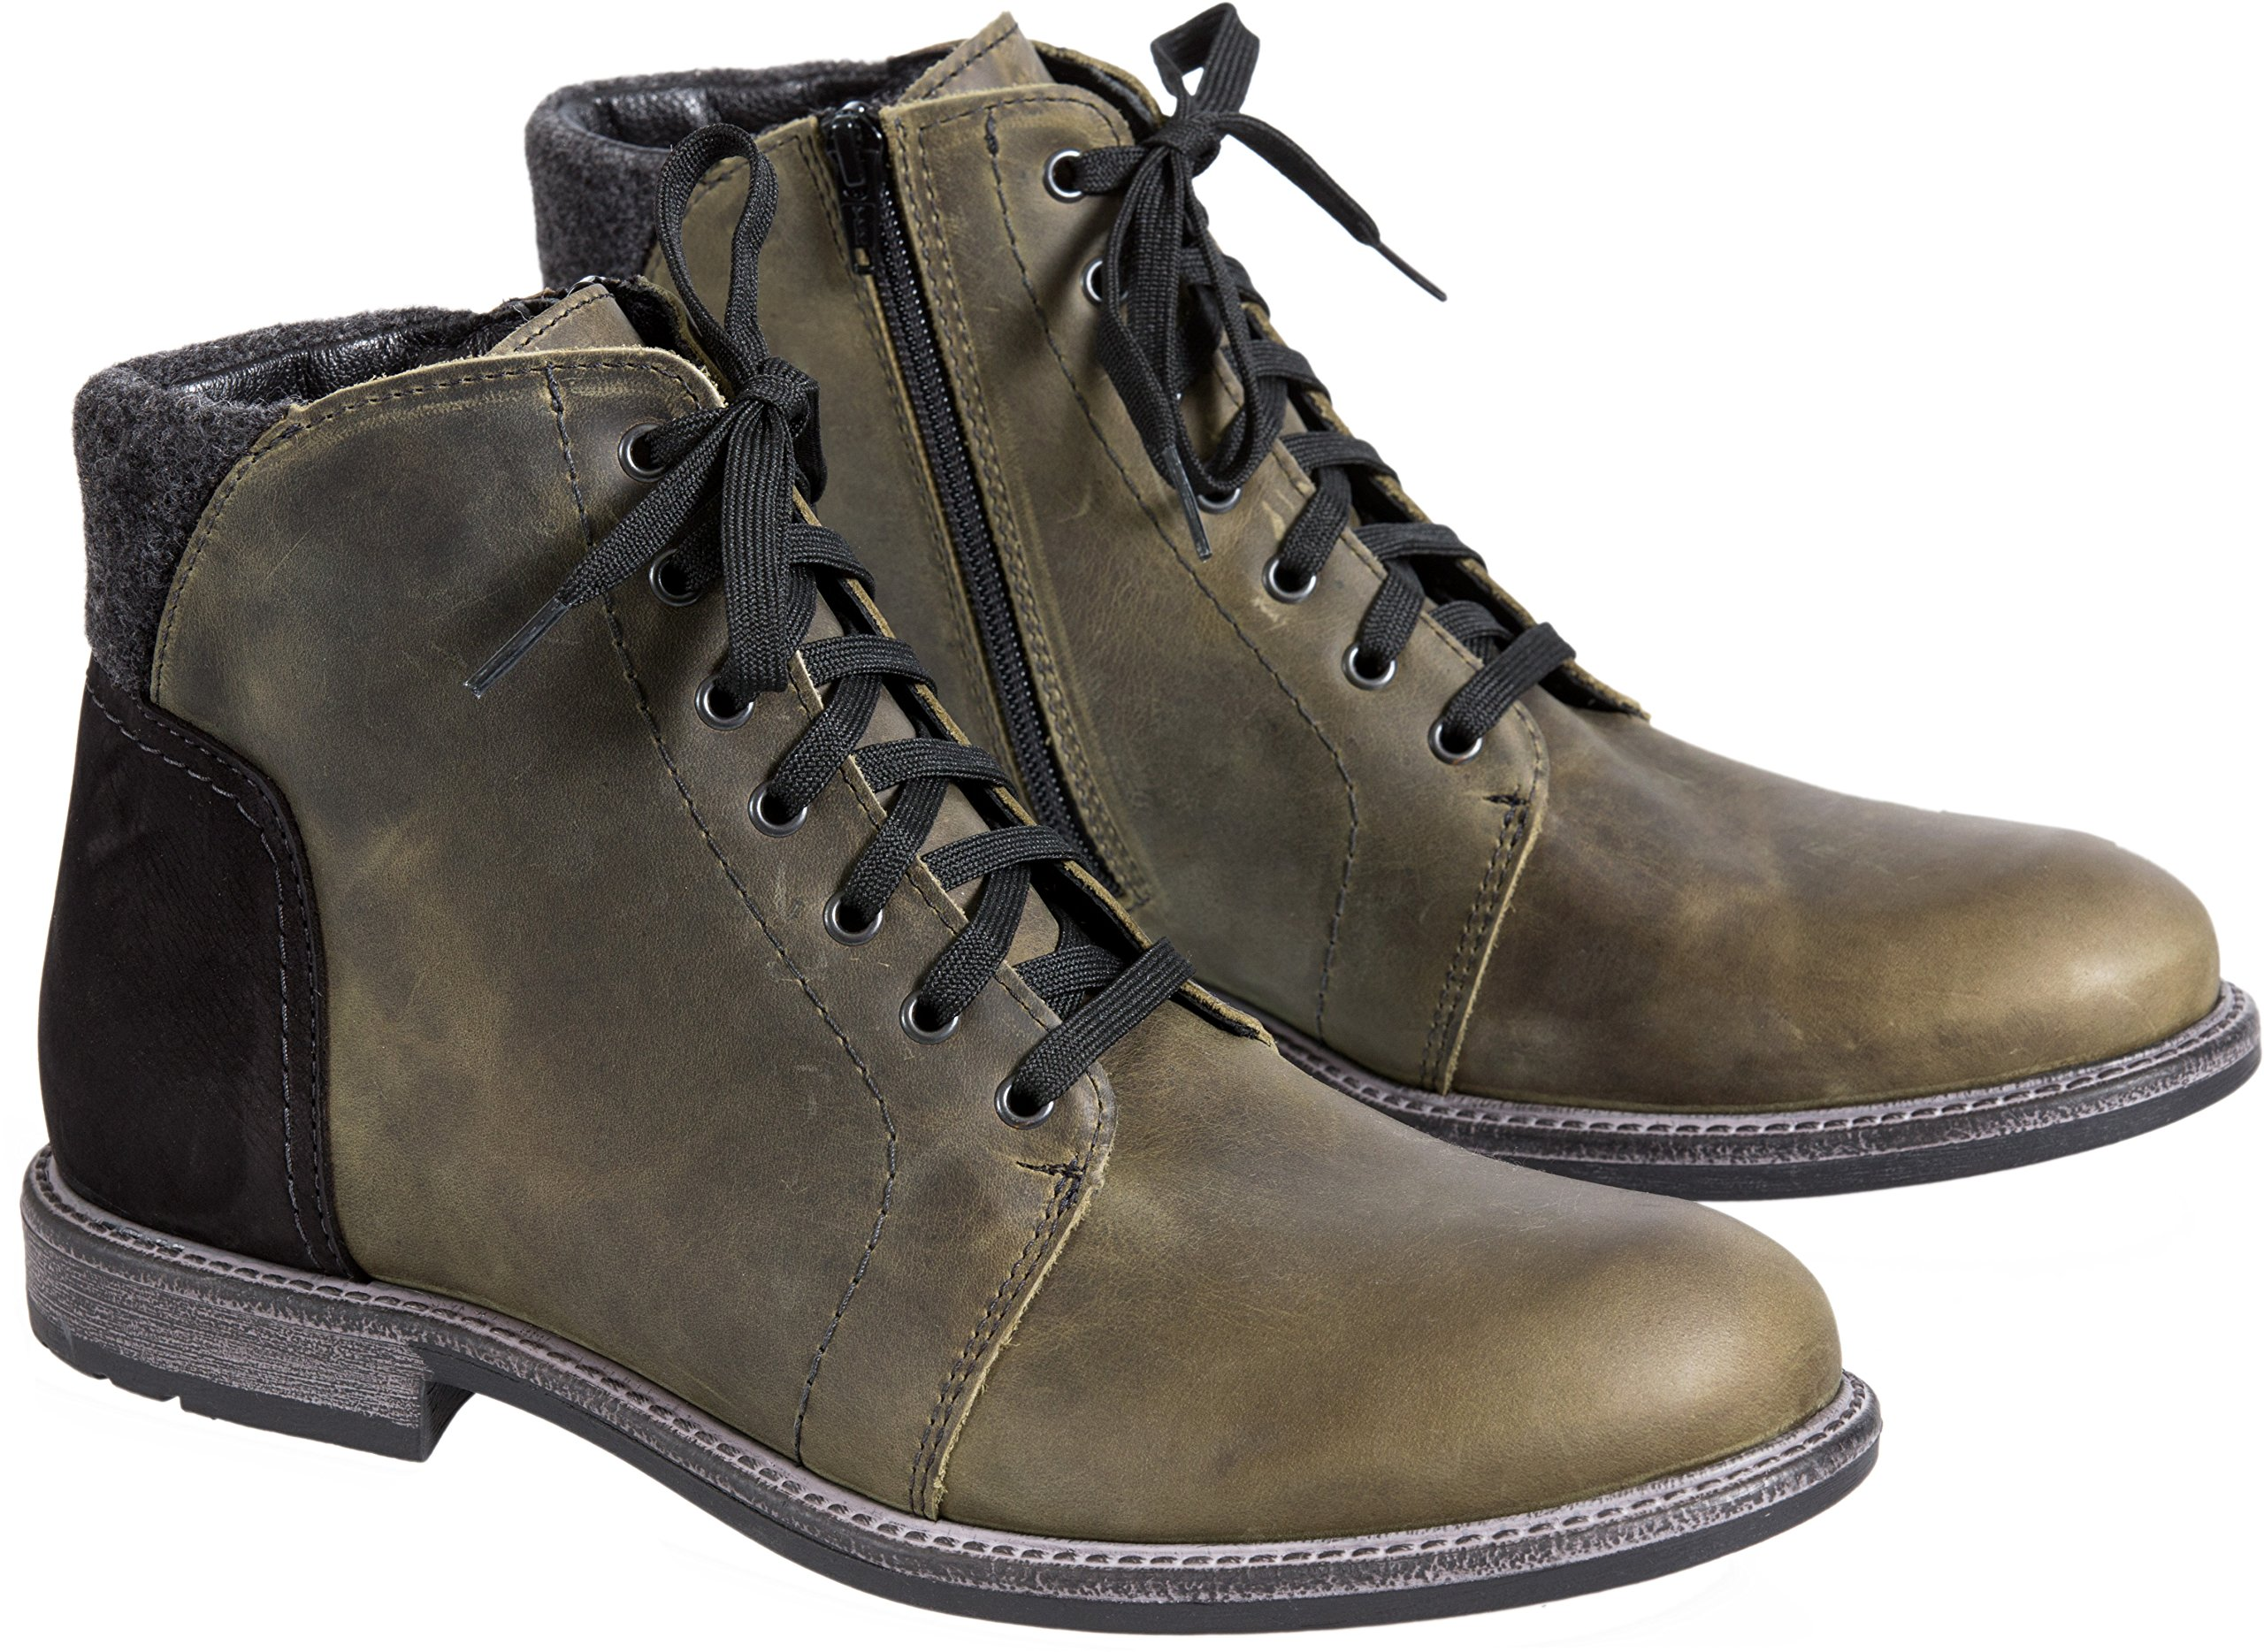 Overland Sheepskin Co. Men's Clement Wool-Lined Waterproof Italian Leather Boots, Oil Olive Nubuck, Size EU43